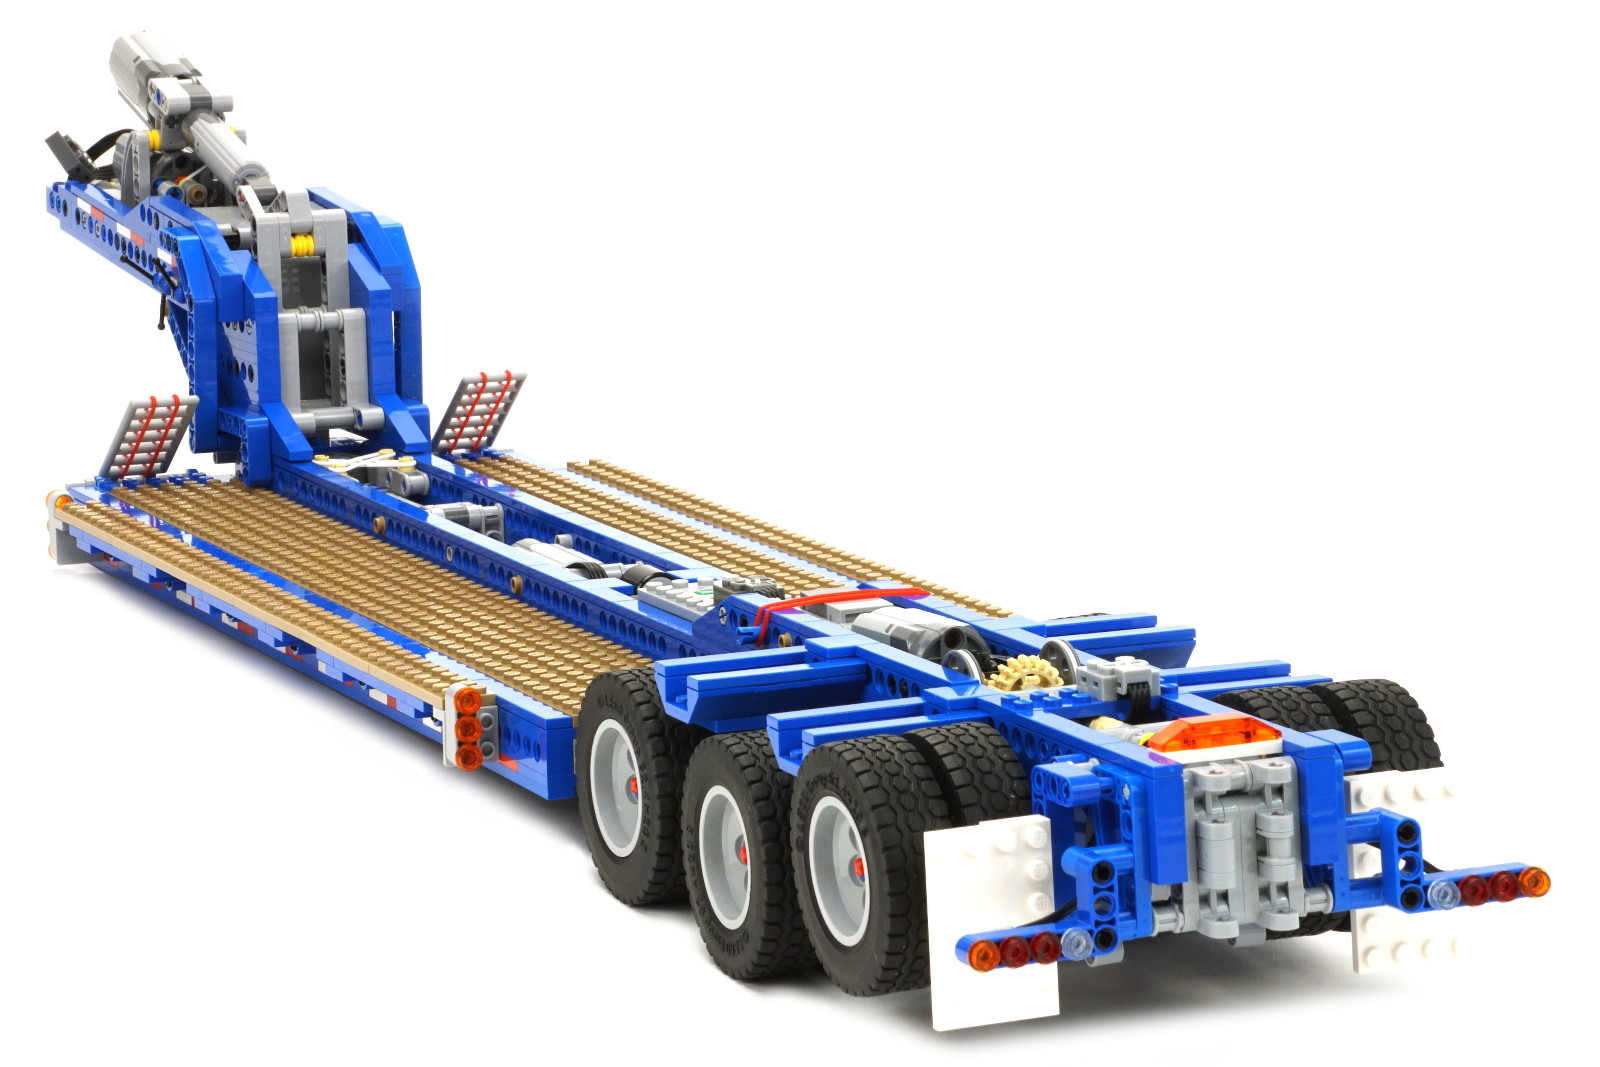 Building experience kit trailer tr4 products ingmar spijkhoven color solutioingenieria Choice Image